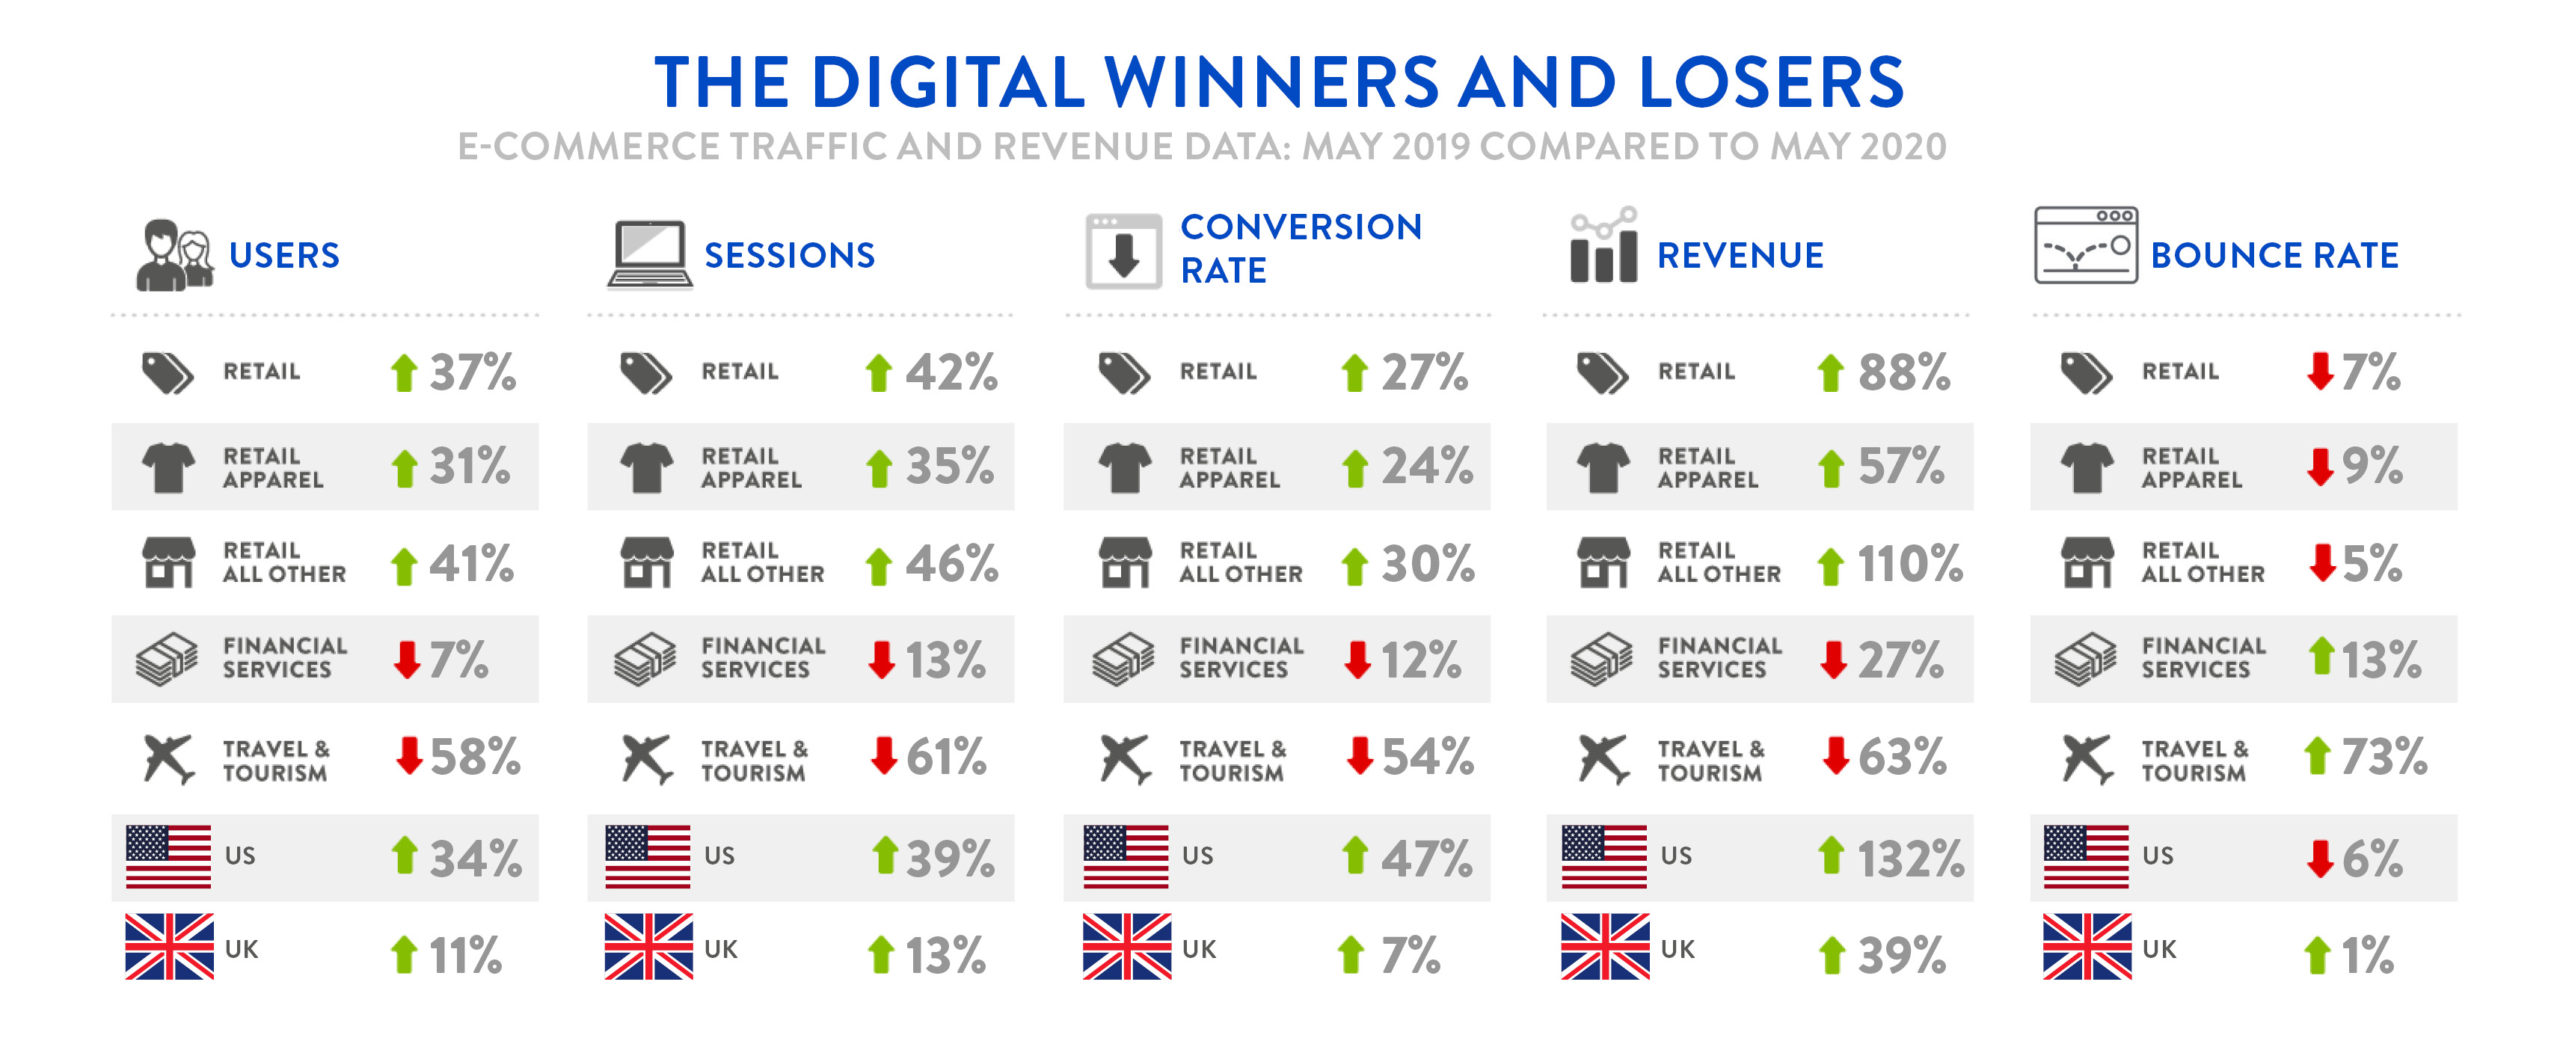 Digivante Infographic - May 2019 Compared to May 2020